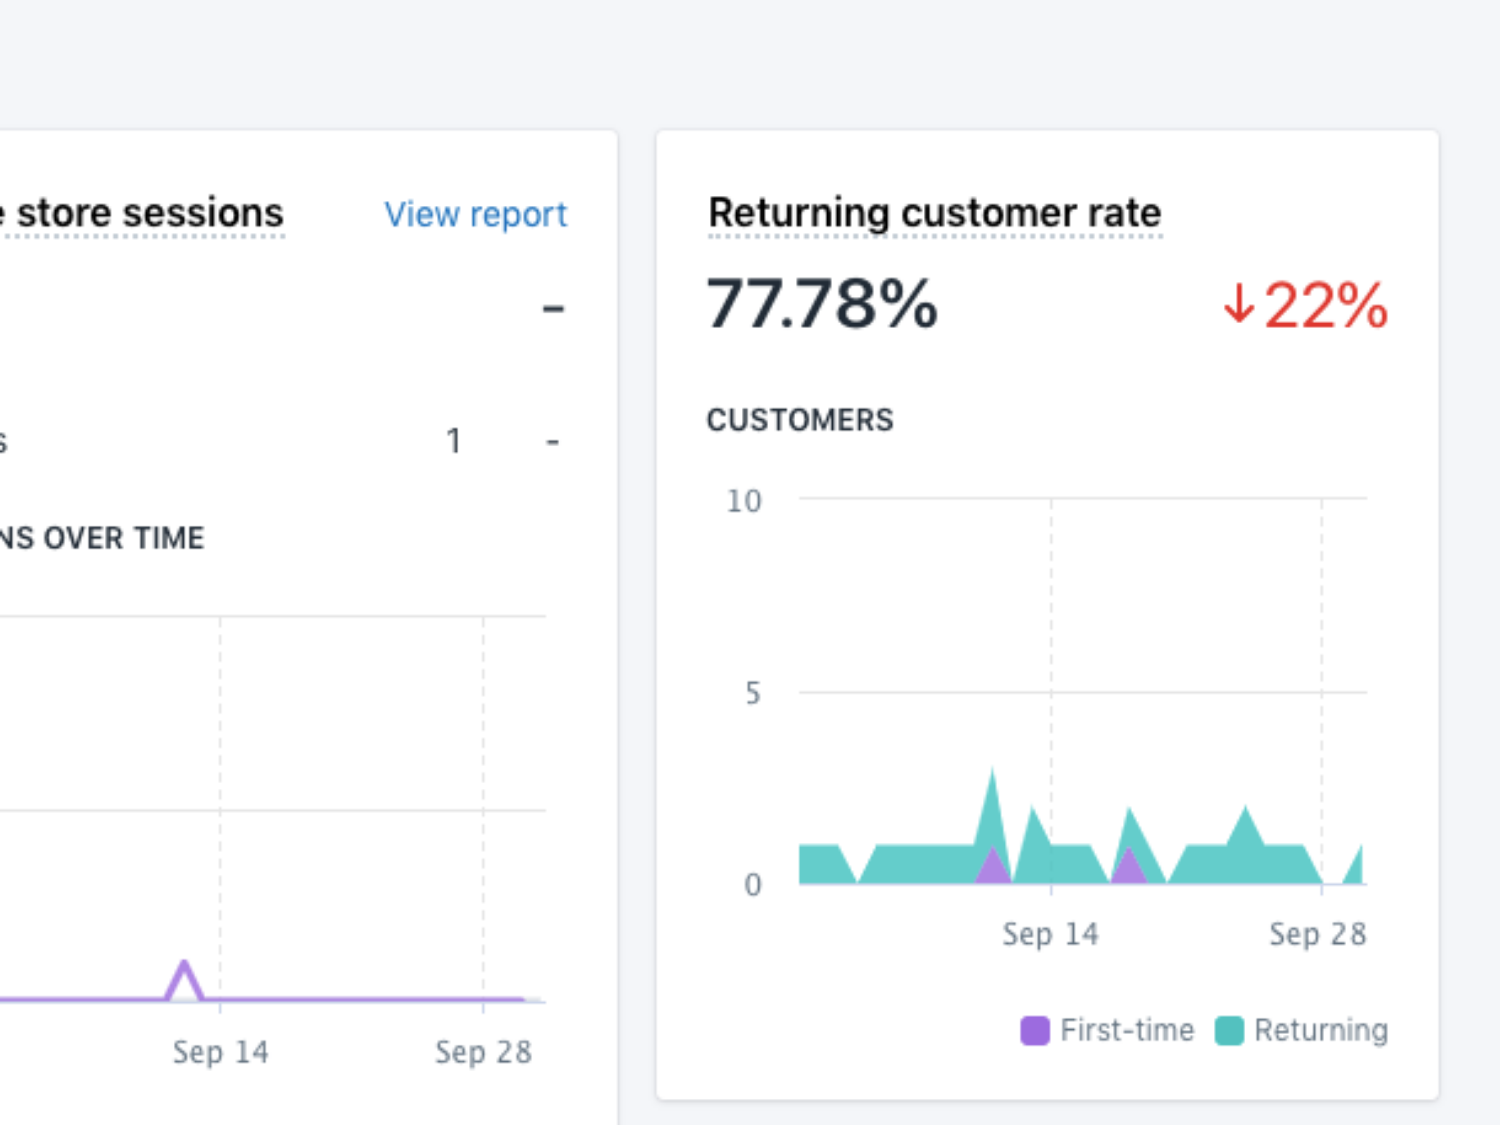 Returning customer rate graph over time on Shopify, shows a slight dip on average